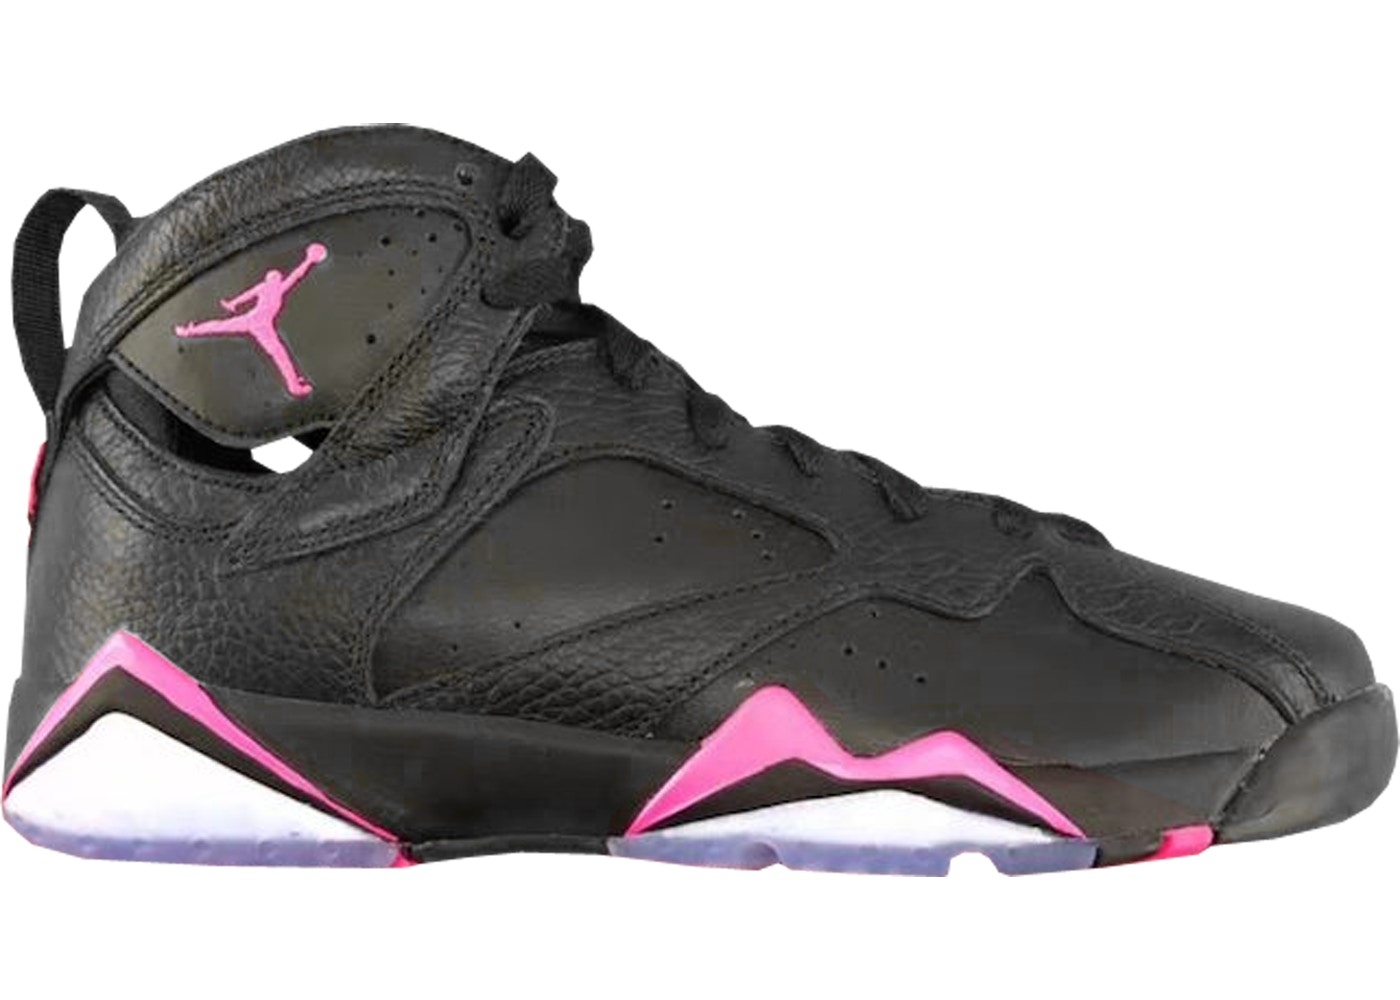 official photos 1121b 34aeb Jordan 7 Retro Black Hyper Pink (GS)